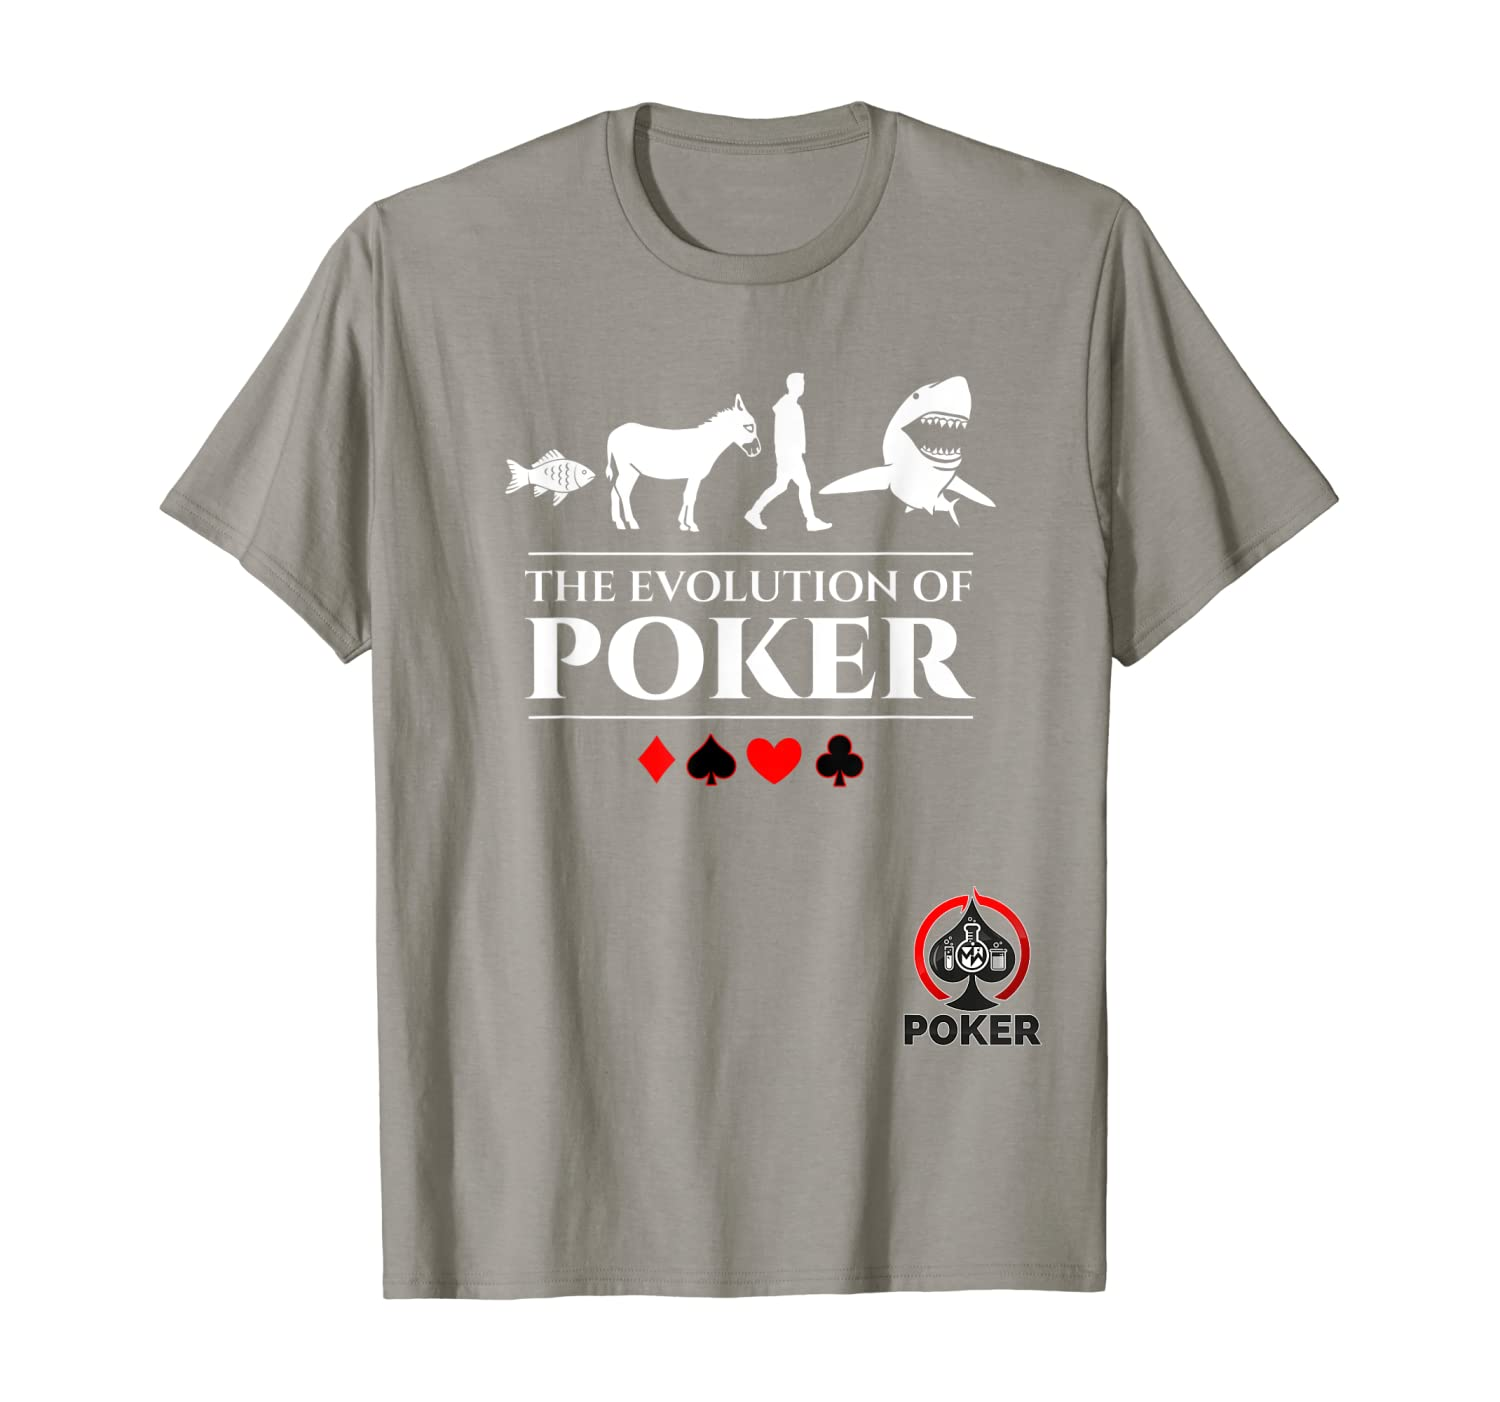 The Evolution of Poker Fish, Donkey, Man, Card Shark Shirt T-Shirt